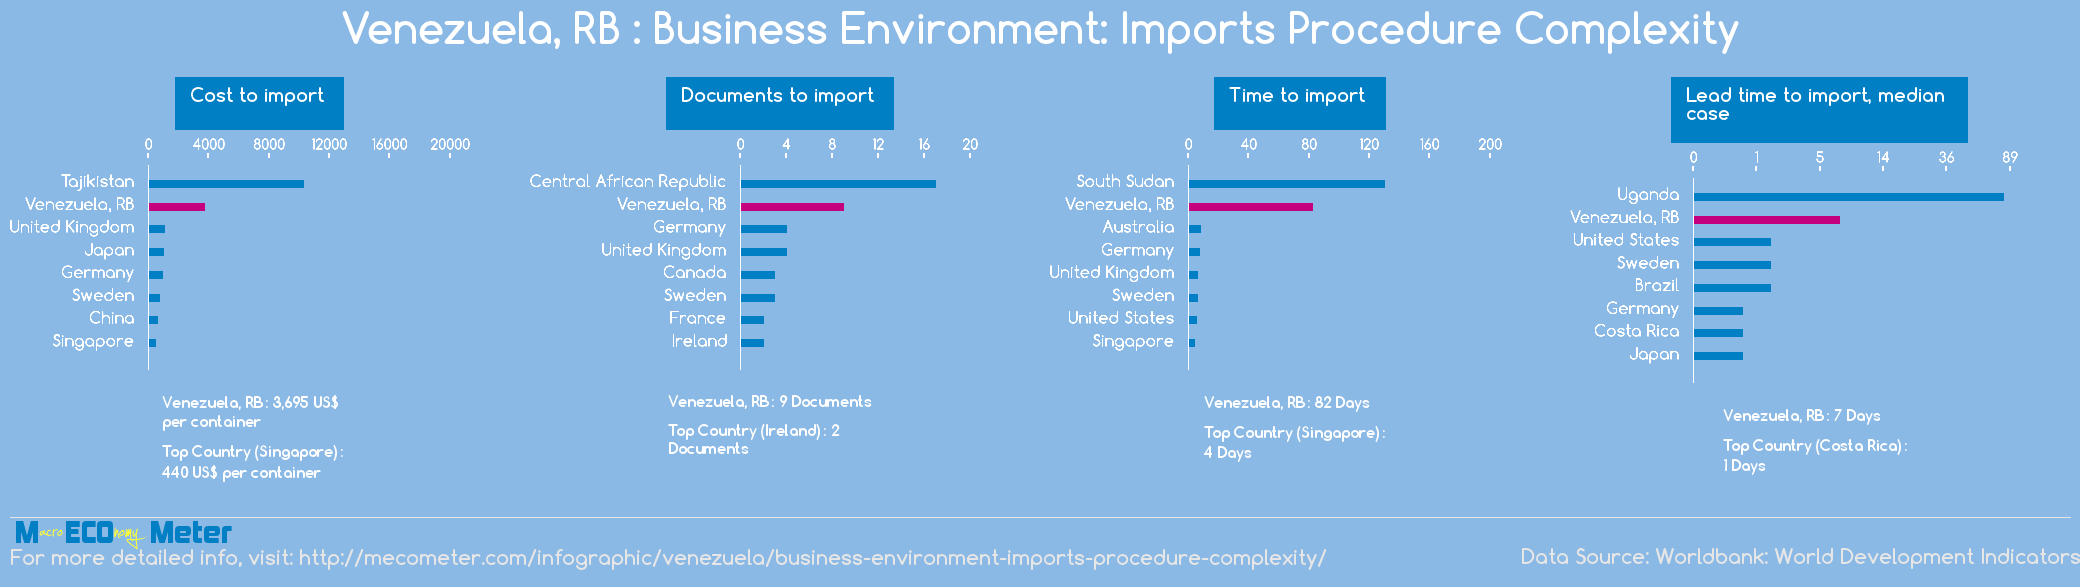 Venezuela, RB : Business Environment: Imports Procedure Complexity